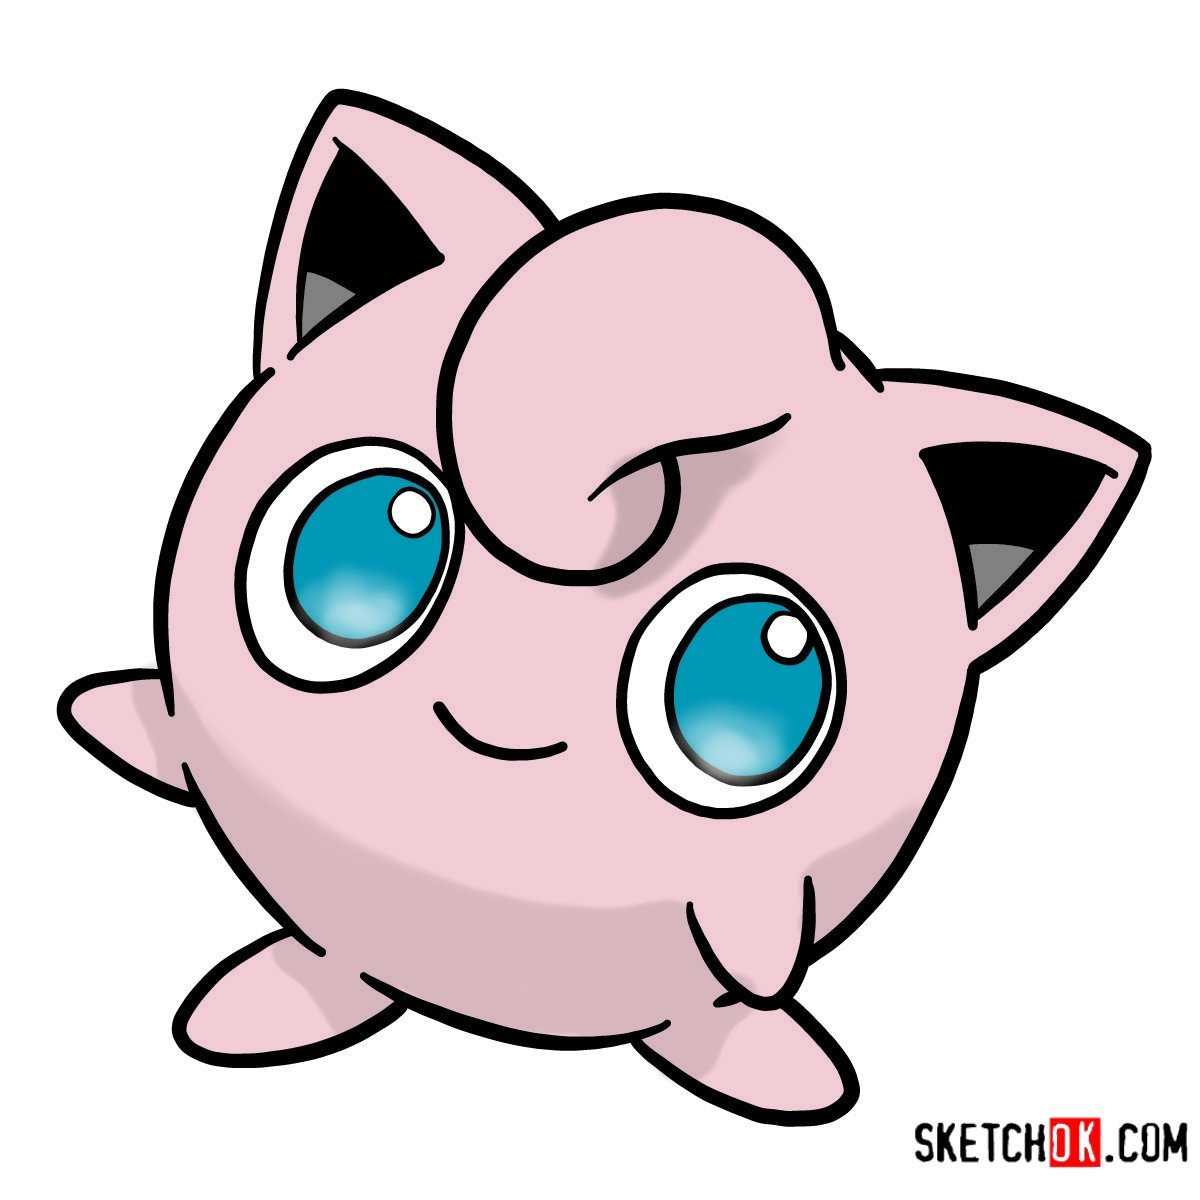 How to draw Jigglypuff | Pokemon